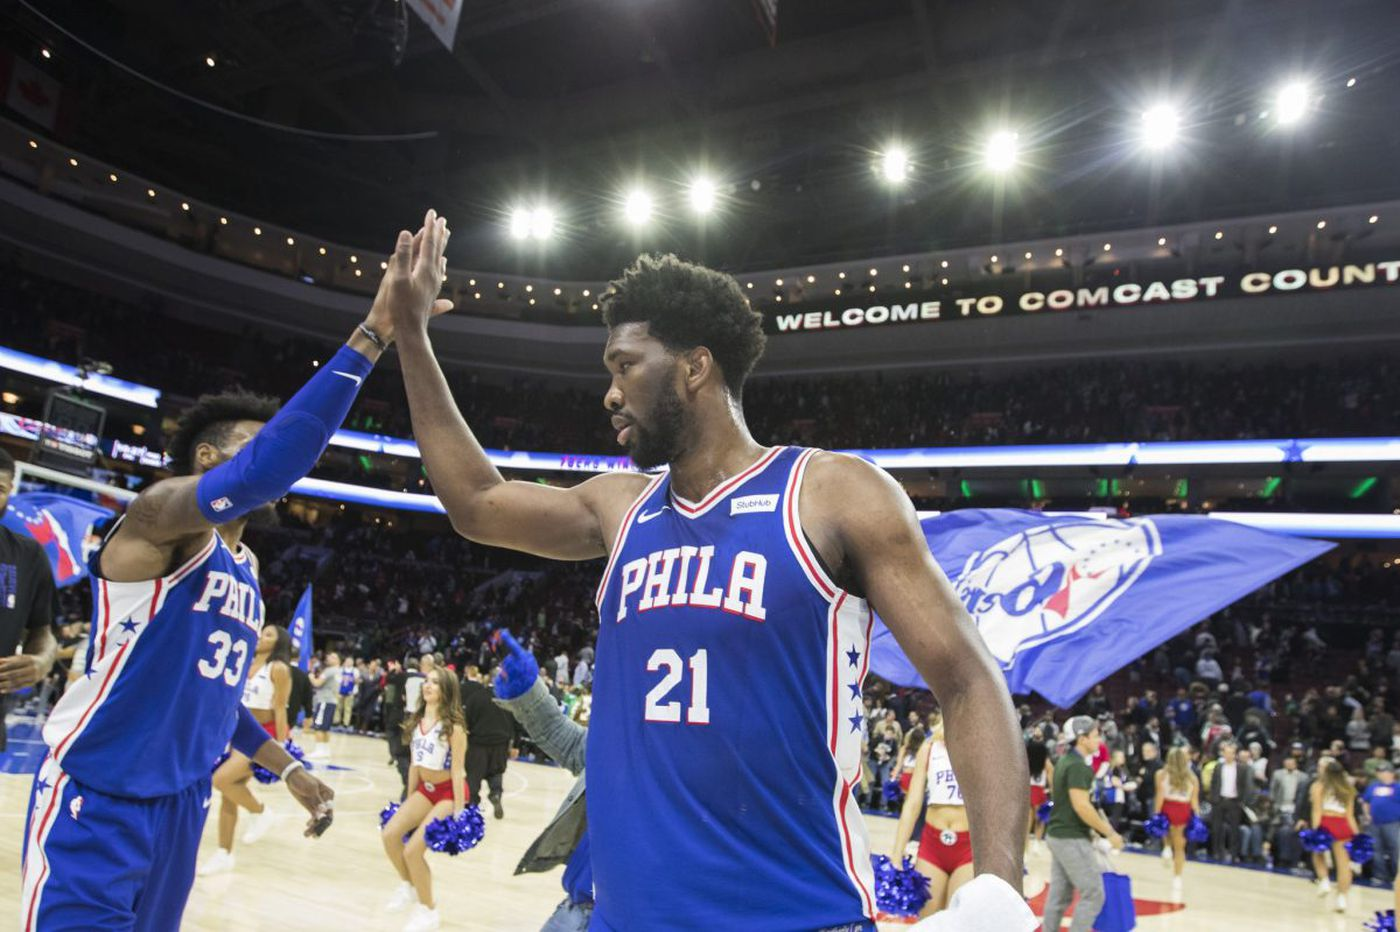 76ers hold off Wizards behind big nights from Joel Embiid, Ben Simmons